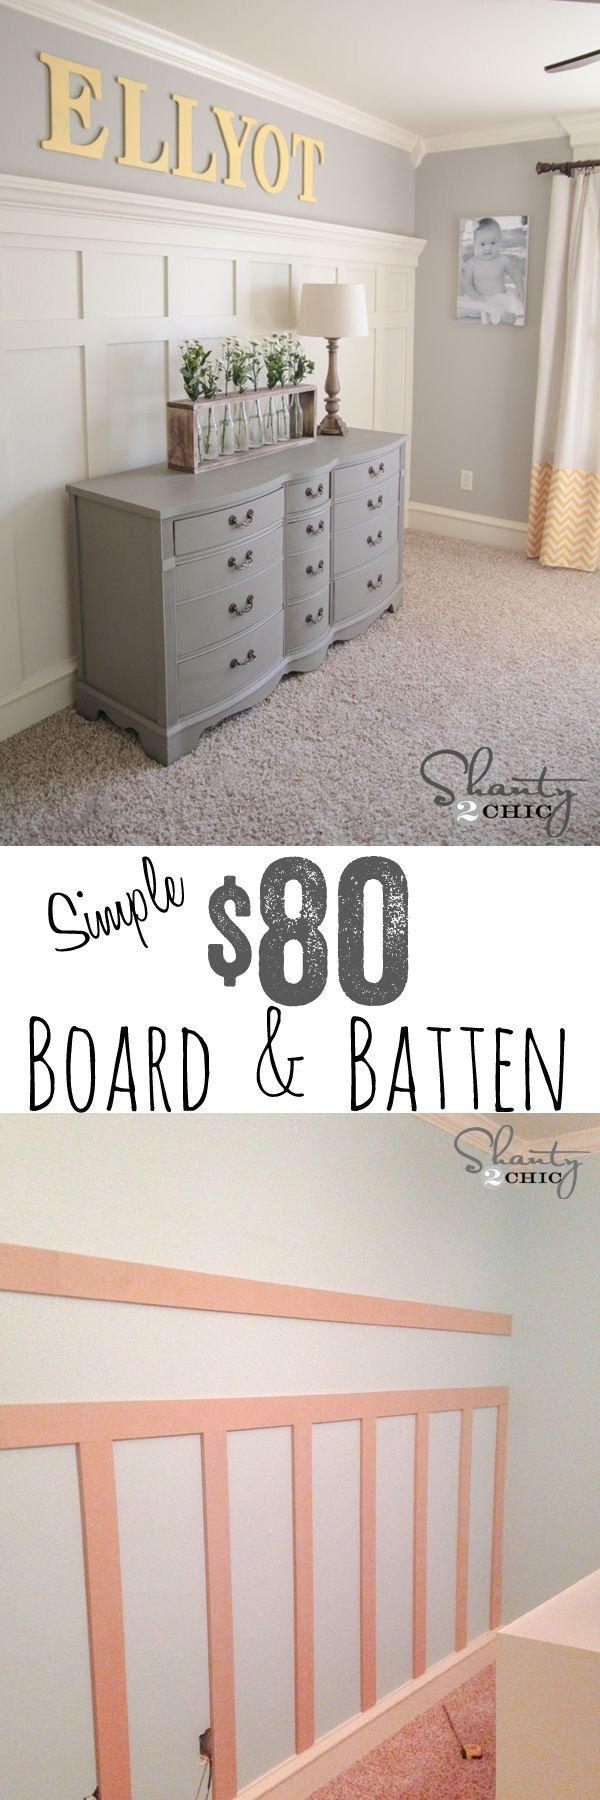 ...used just a couple boards and a piece of trim, and the rest of the wall is made with boards ripped from a full sheet of MDF I had Home Depot cut down for us.